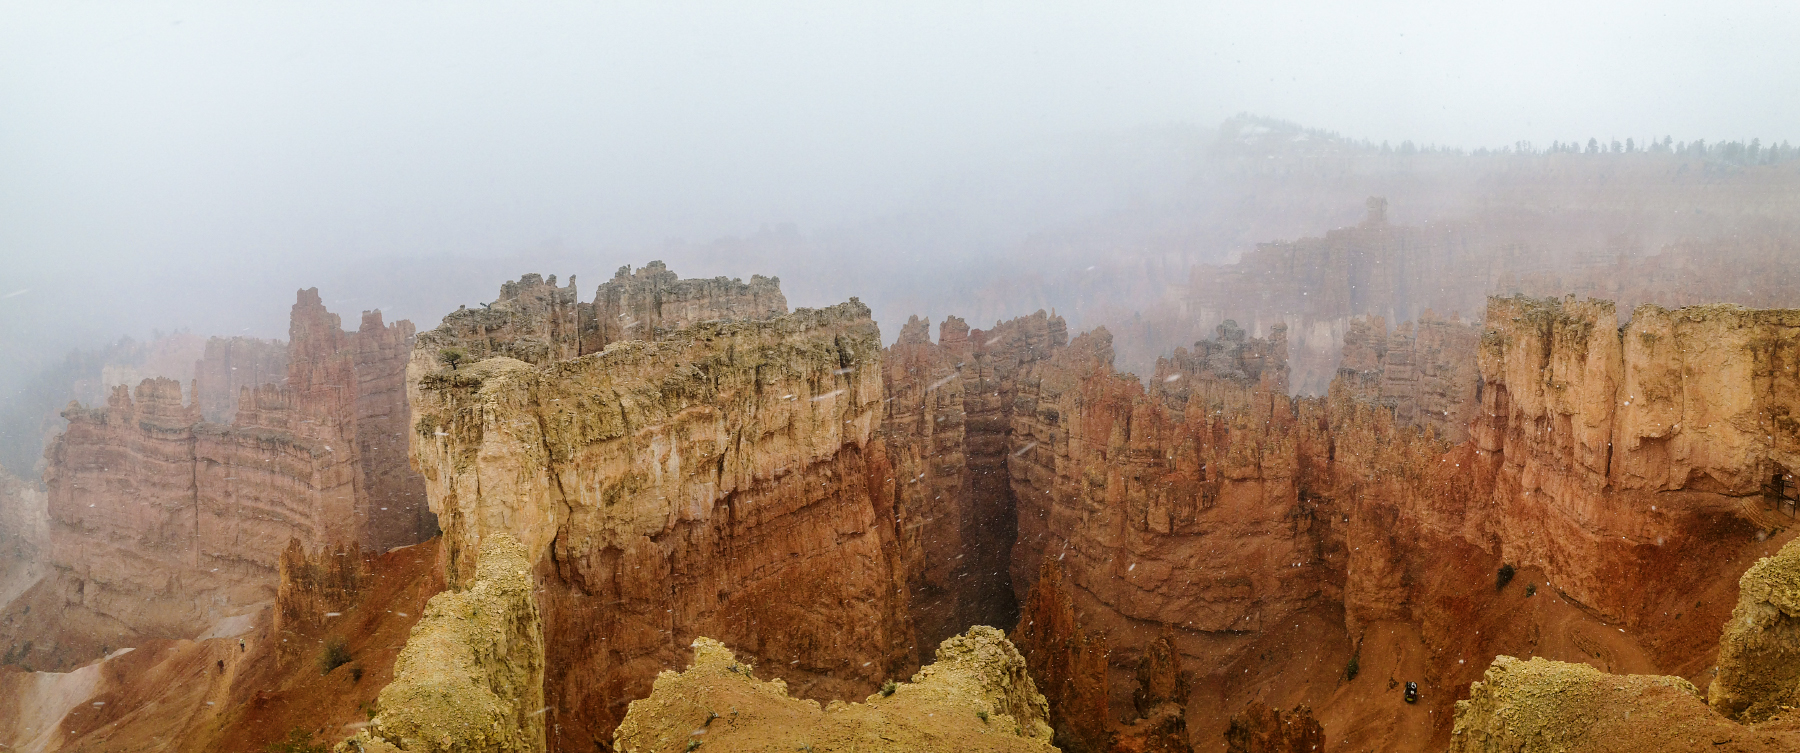 A very limited and snowy view of Bryce Canyon from the Rim trail.